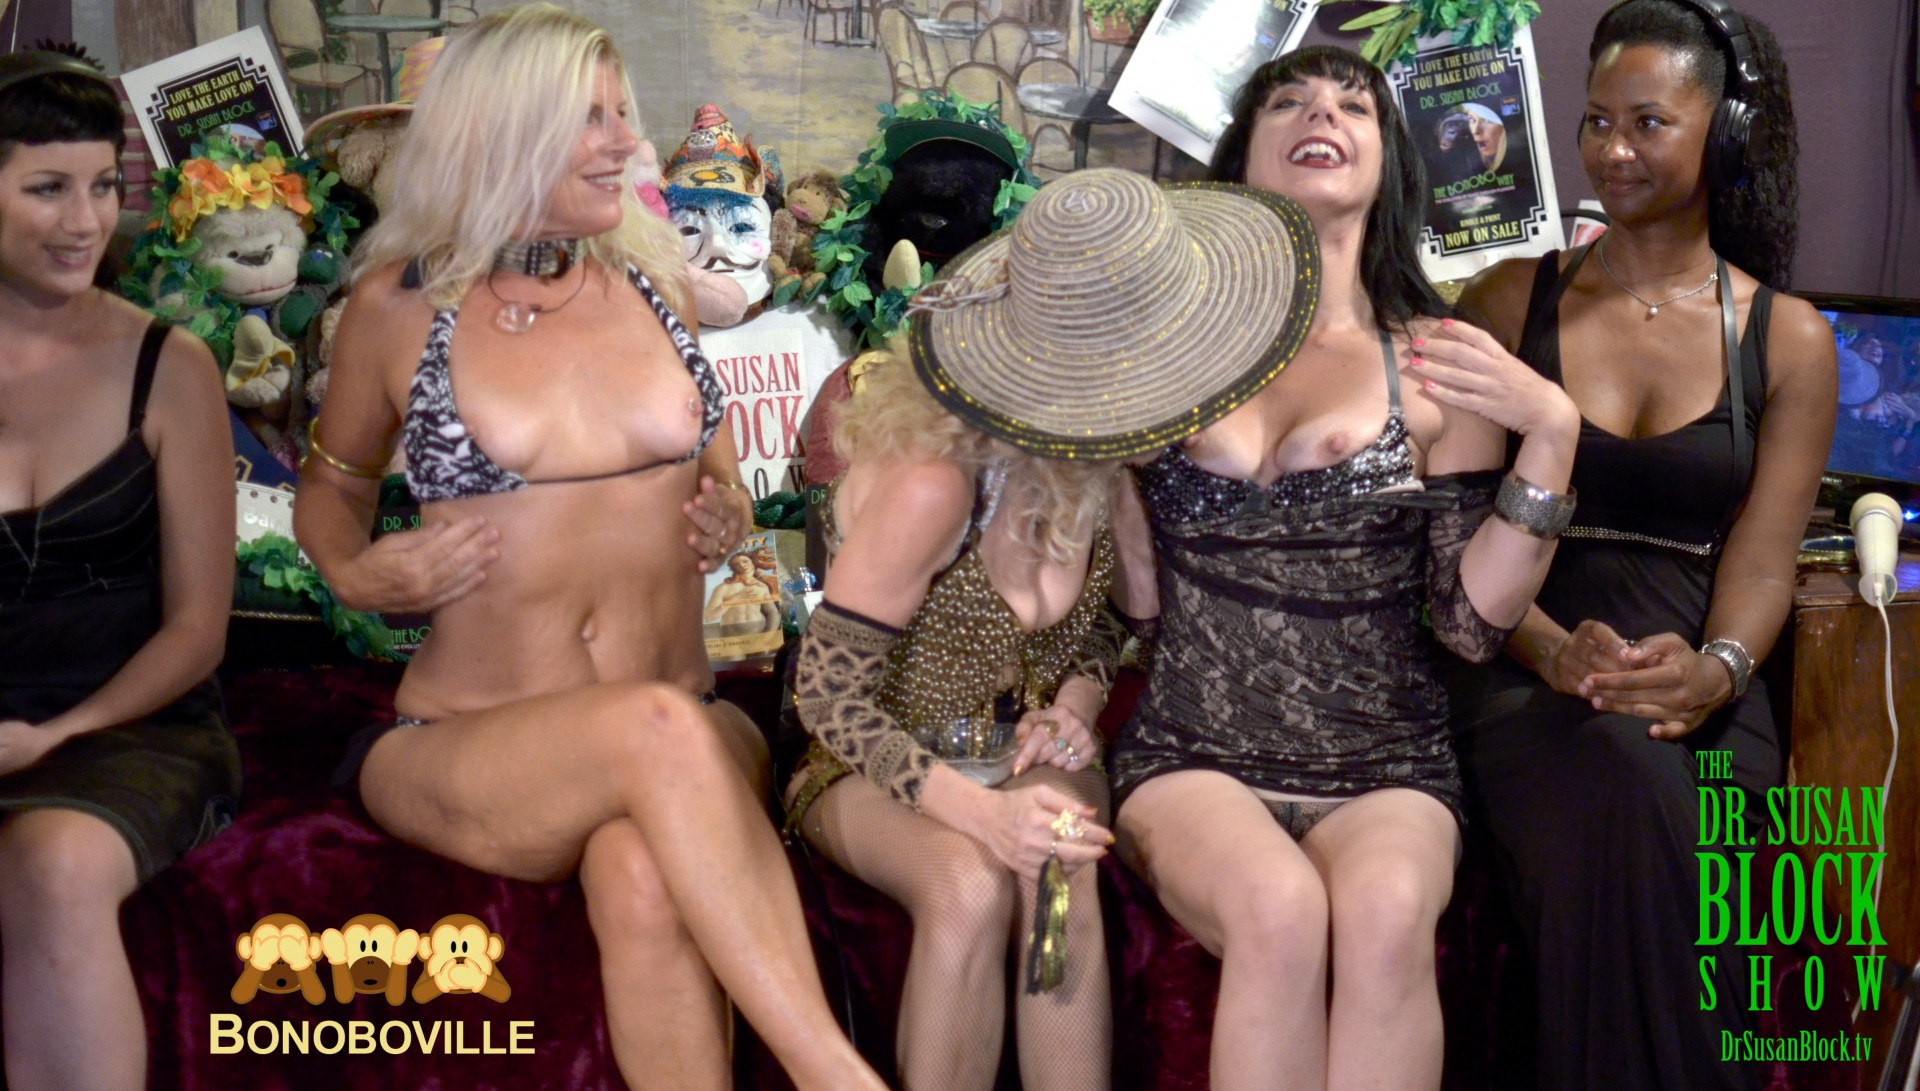 Chelsea and Biz #FreetheNipple for Bonoboville Communion as our guests observe. Photo: Kevin Faircourt